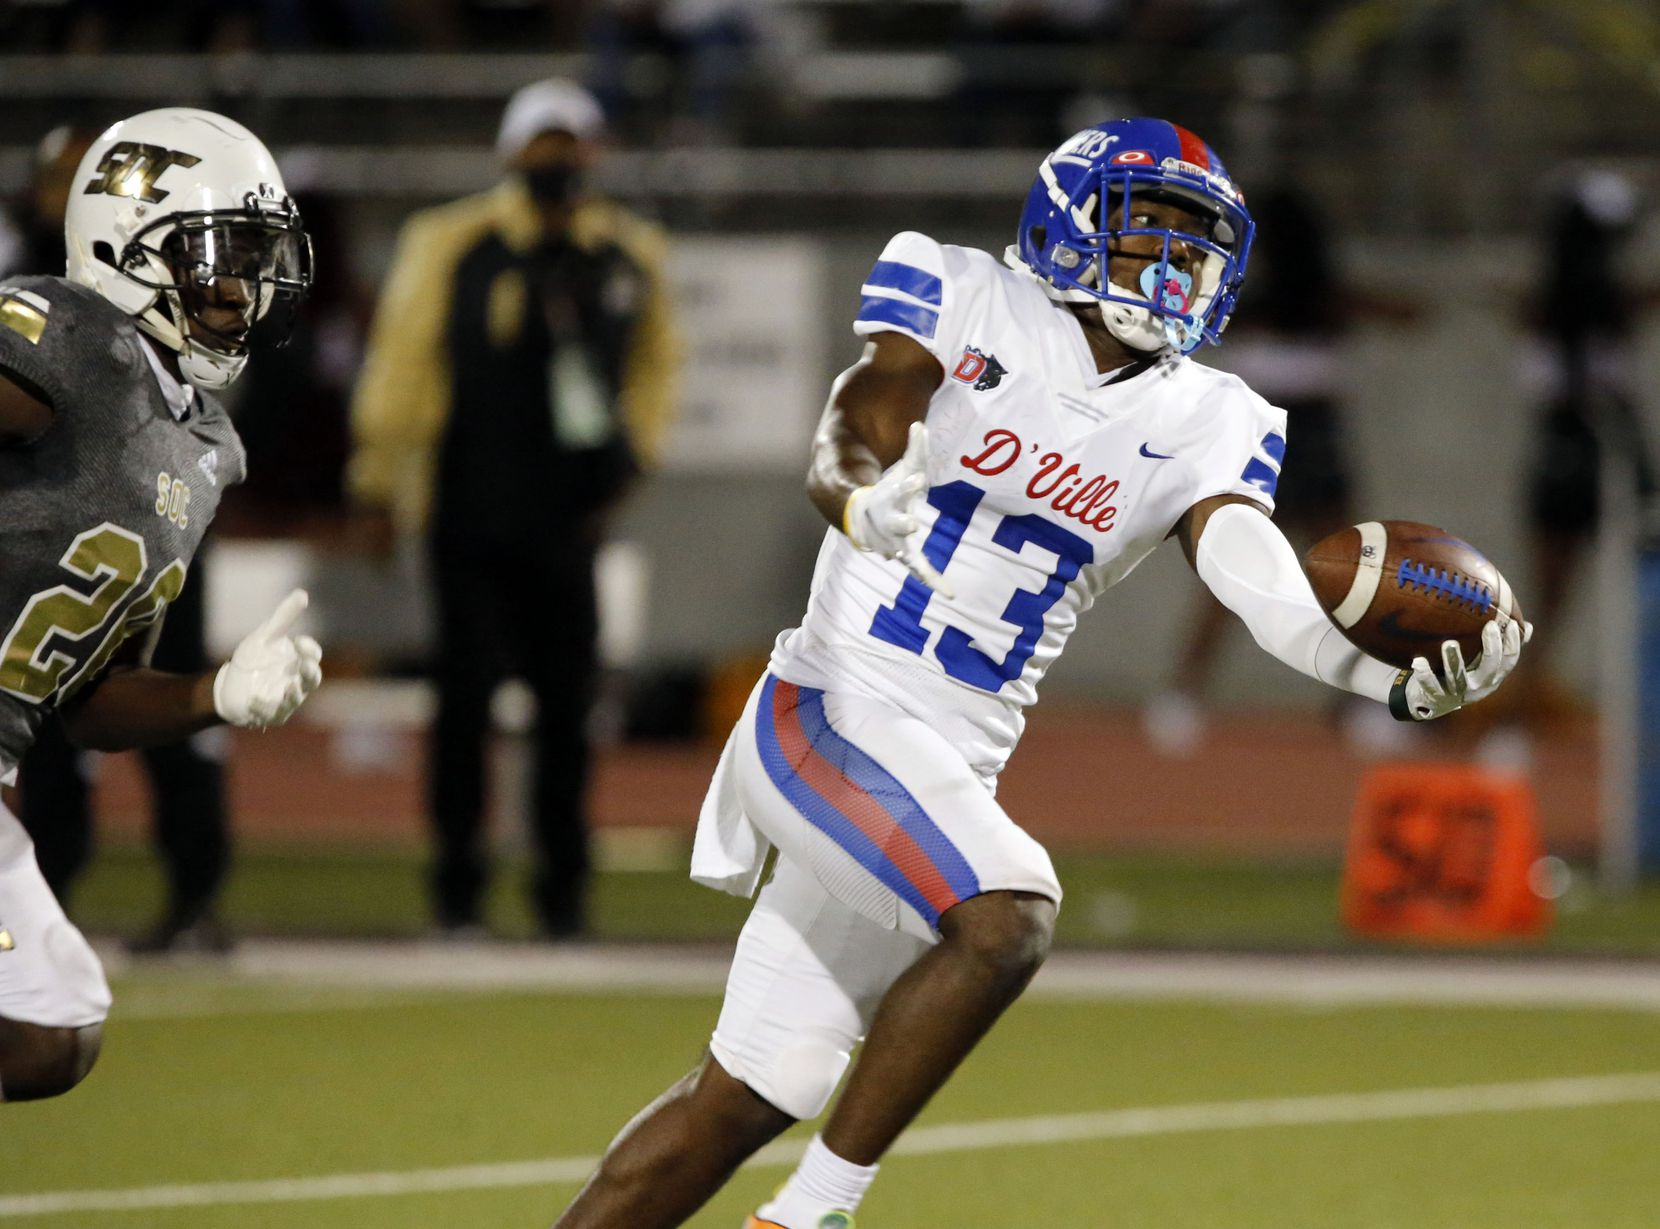 Duncanville WR Roderick Daniels, Jr. (13) makes a one-hand catch over South Oak Cliff' defender Kyron Chambers (20) to setup a touchdown during the first half of high school football game at Kincaide Stadium in Dallas on Friday, October 3, 2020.